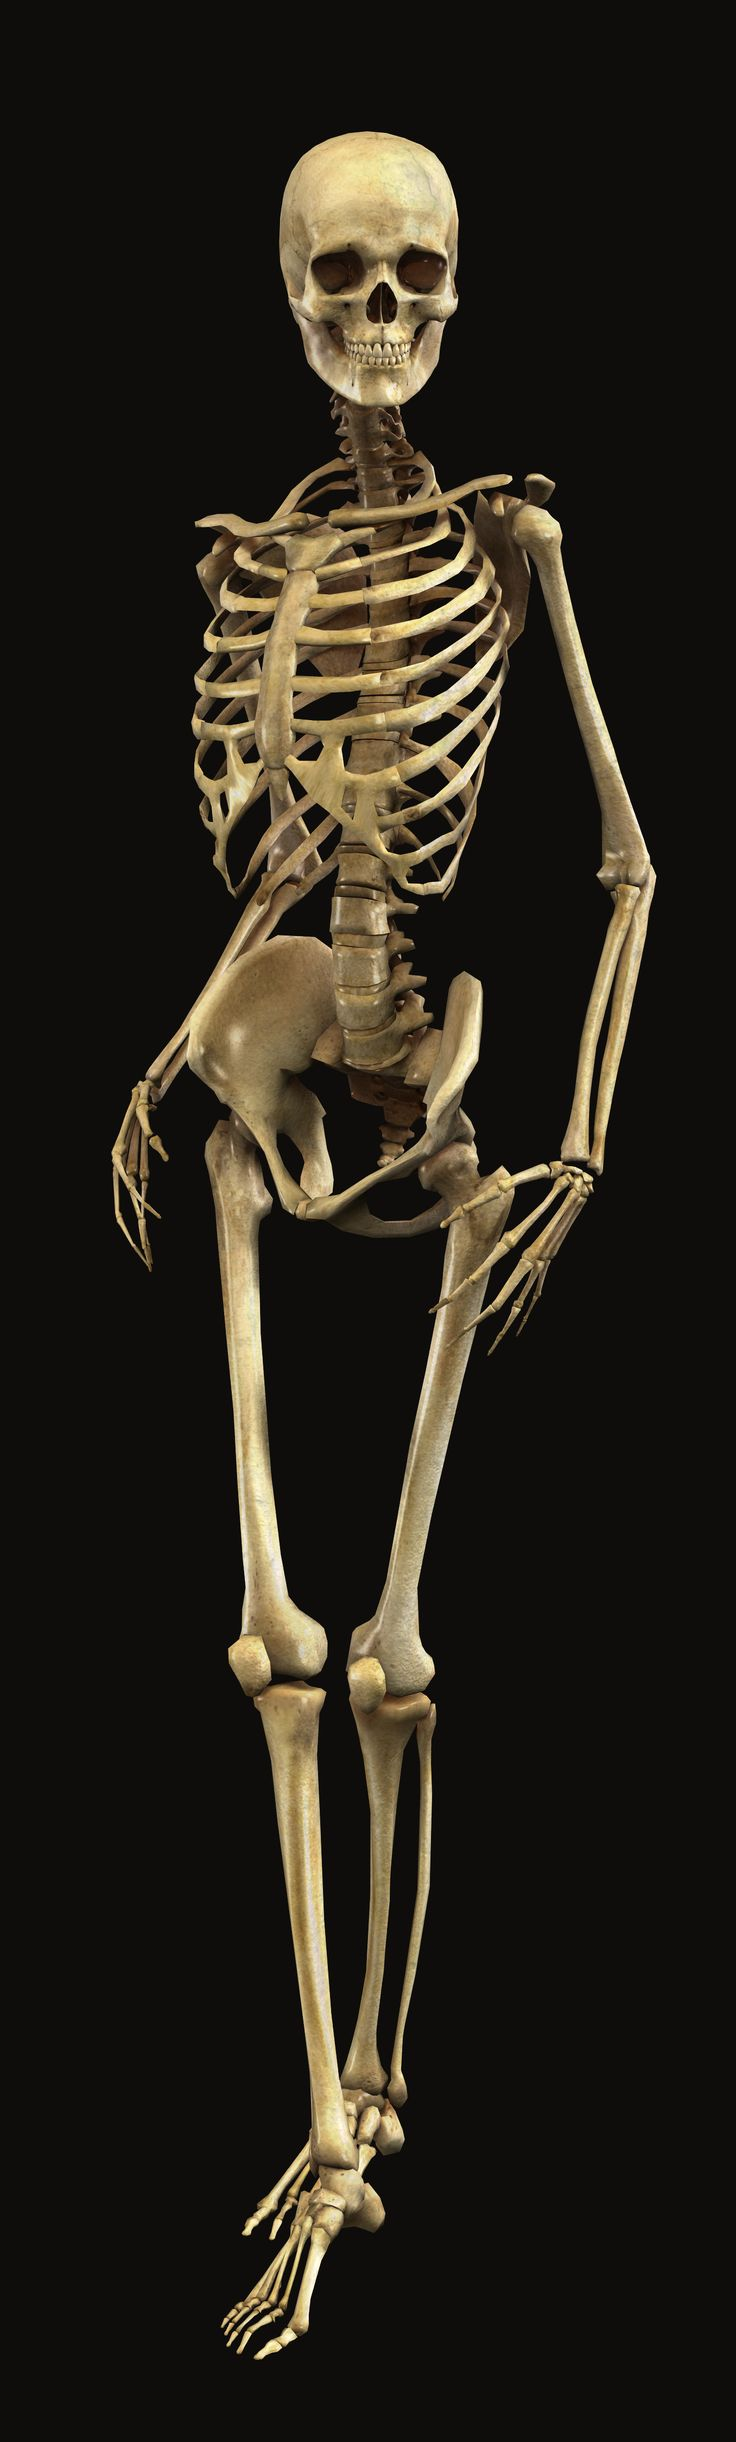 You are born with 300 #bones but as you grow older, some fuse together and you eventually end up with only 206 #fact